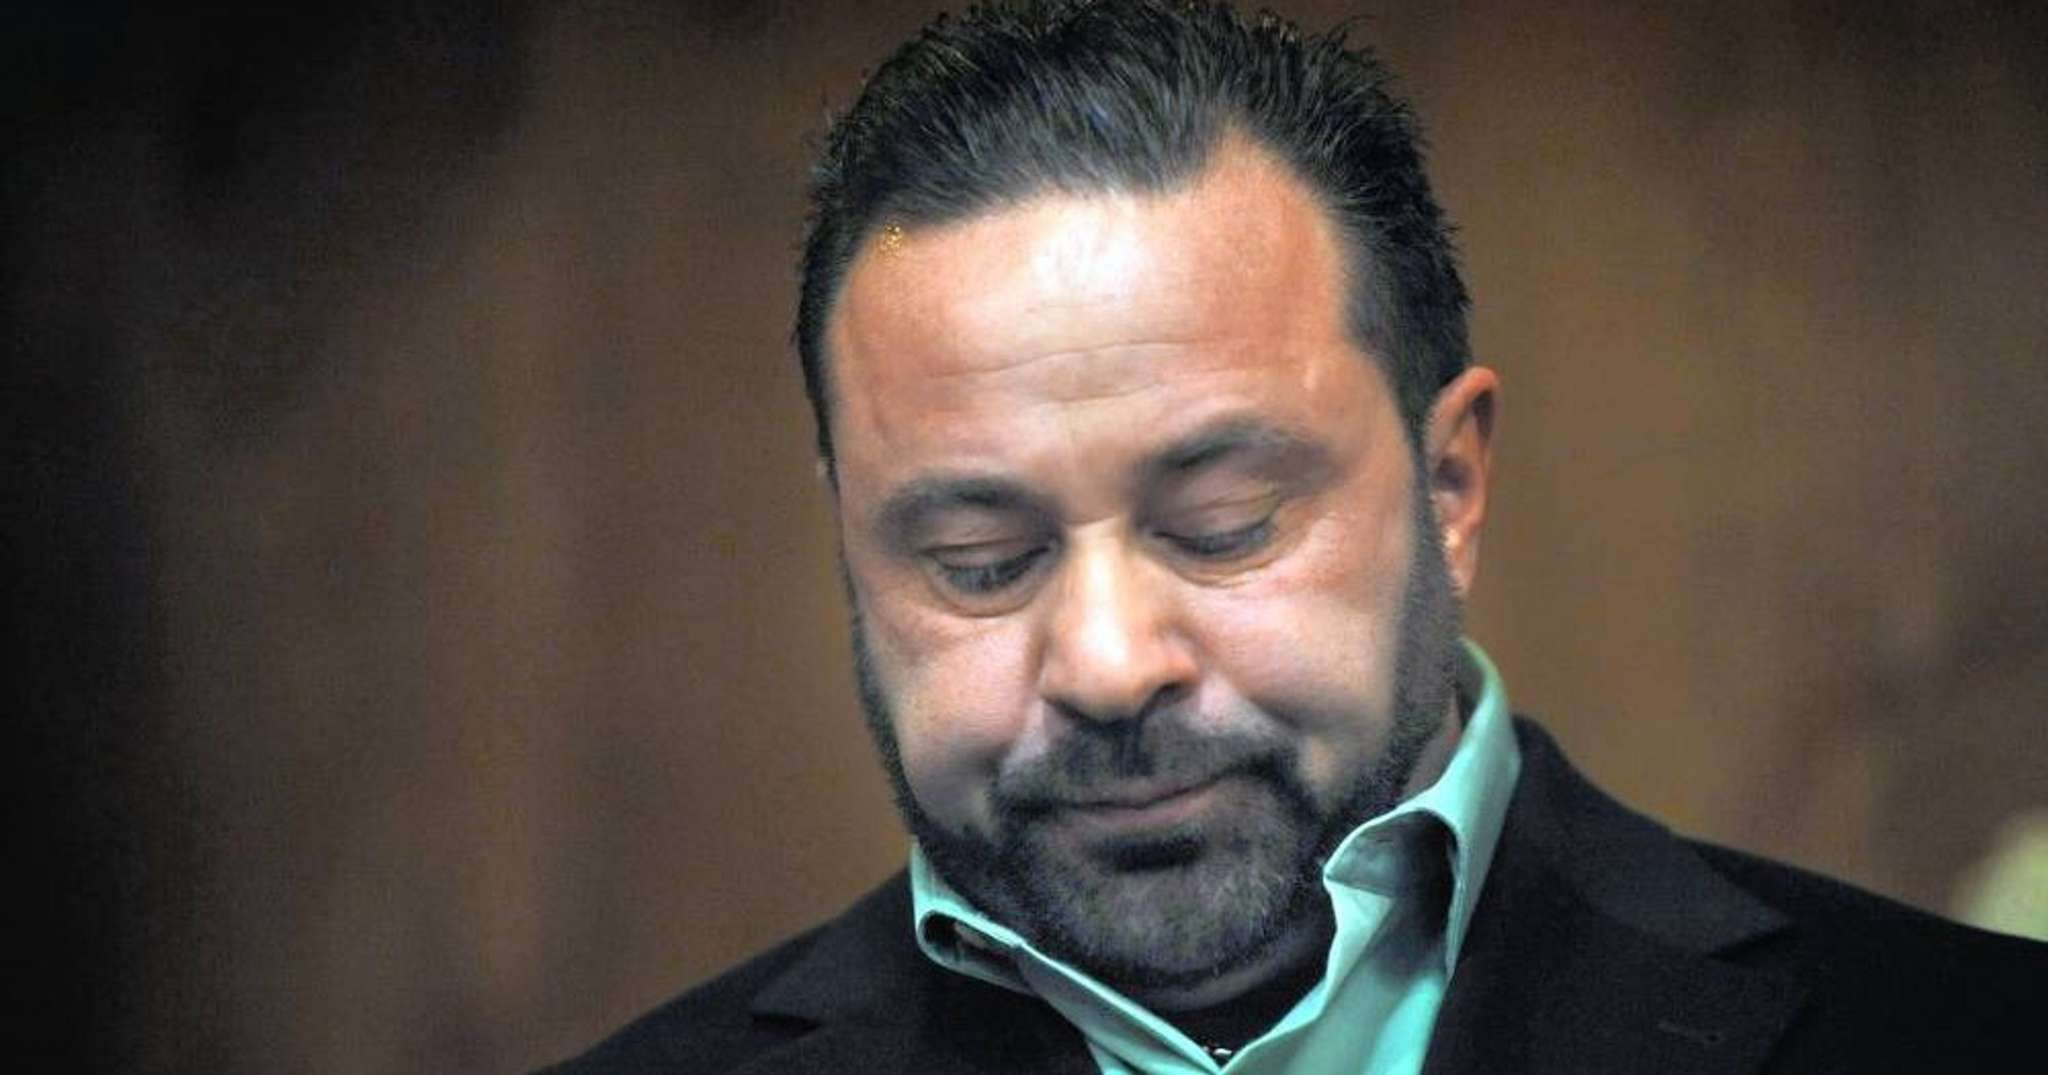 'Real Housewives' husband Joe Giudice loses immigration appeal